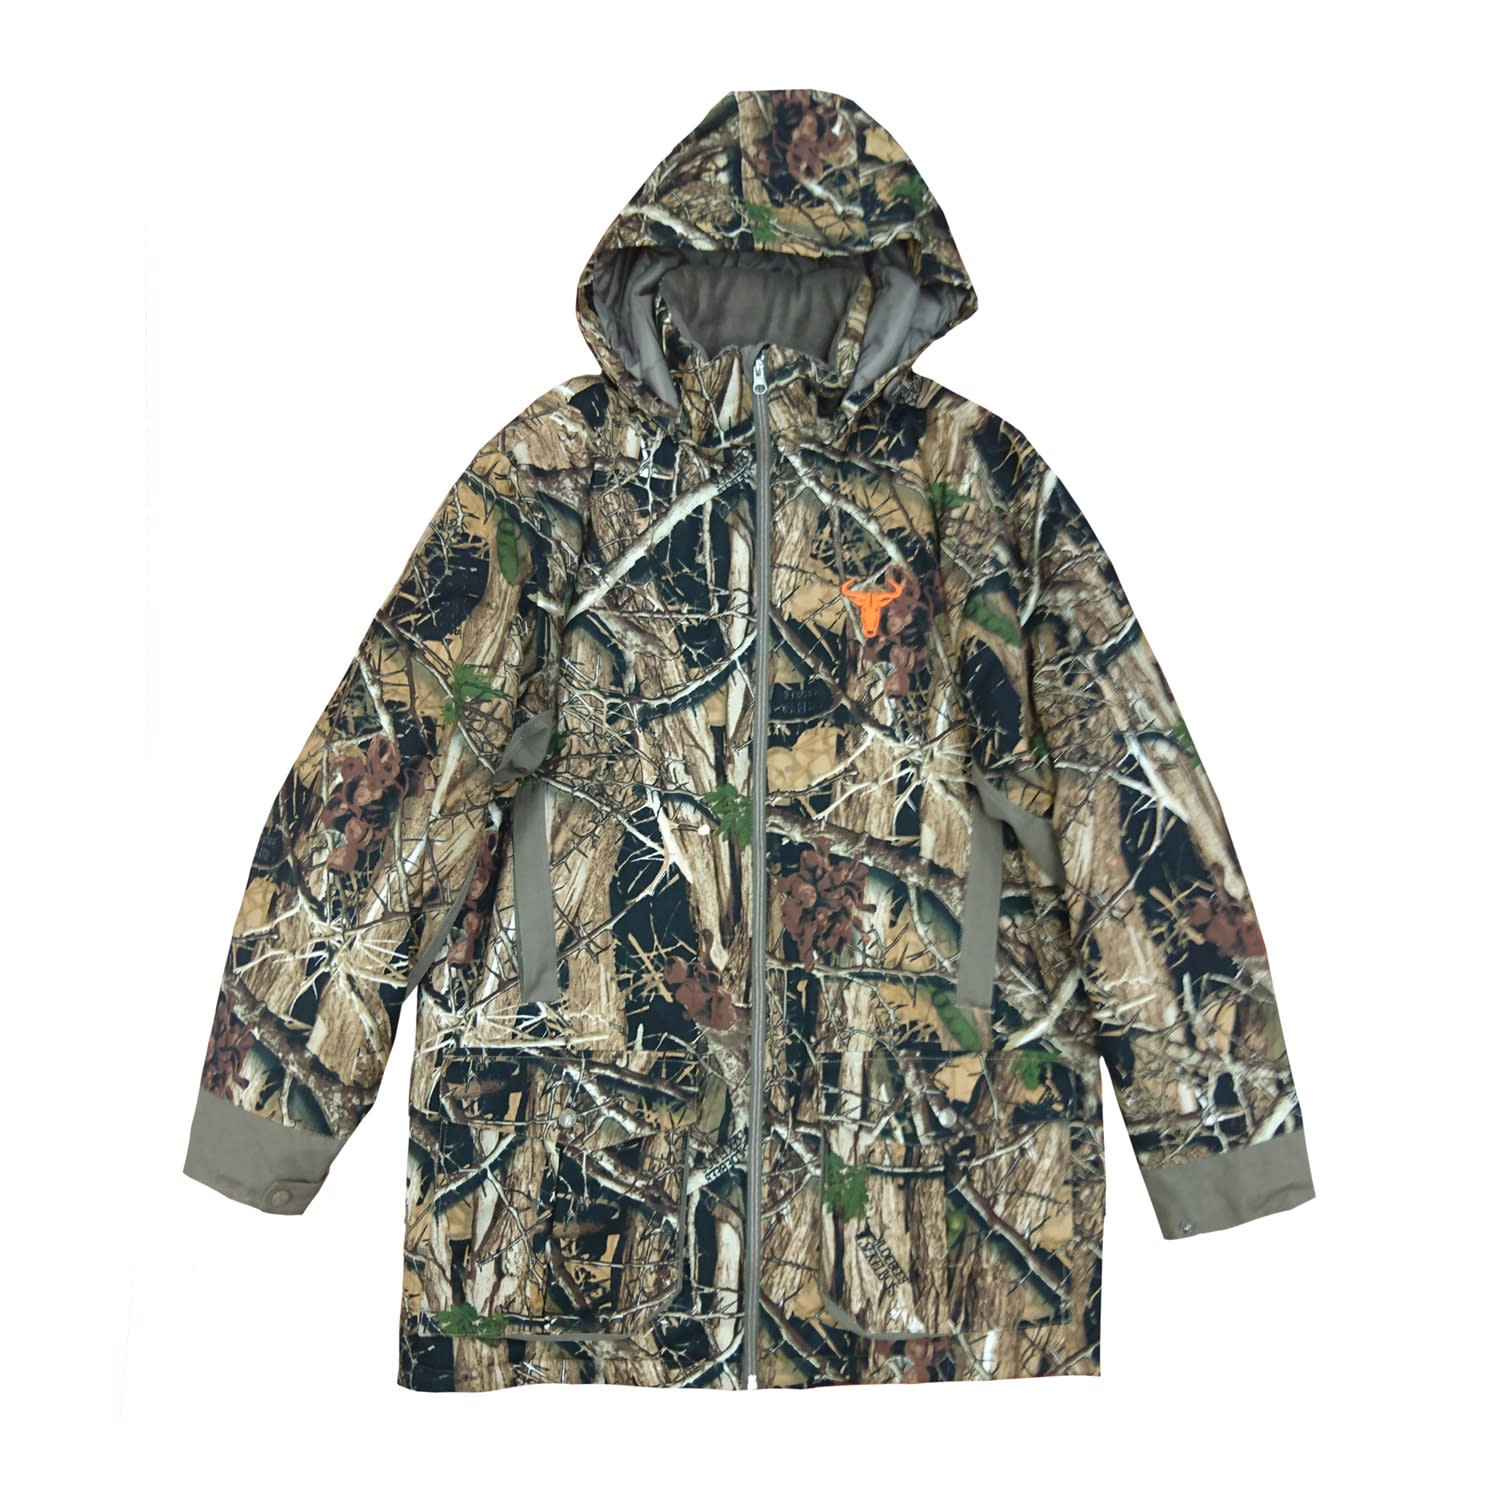 Wildebees Men's Camo Bush Jacket